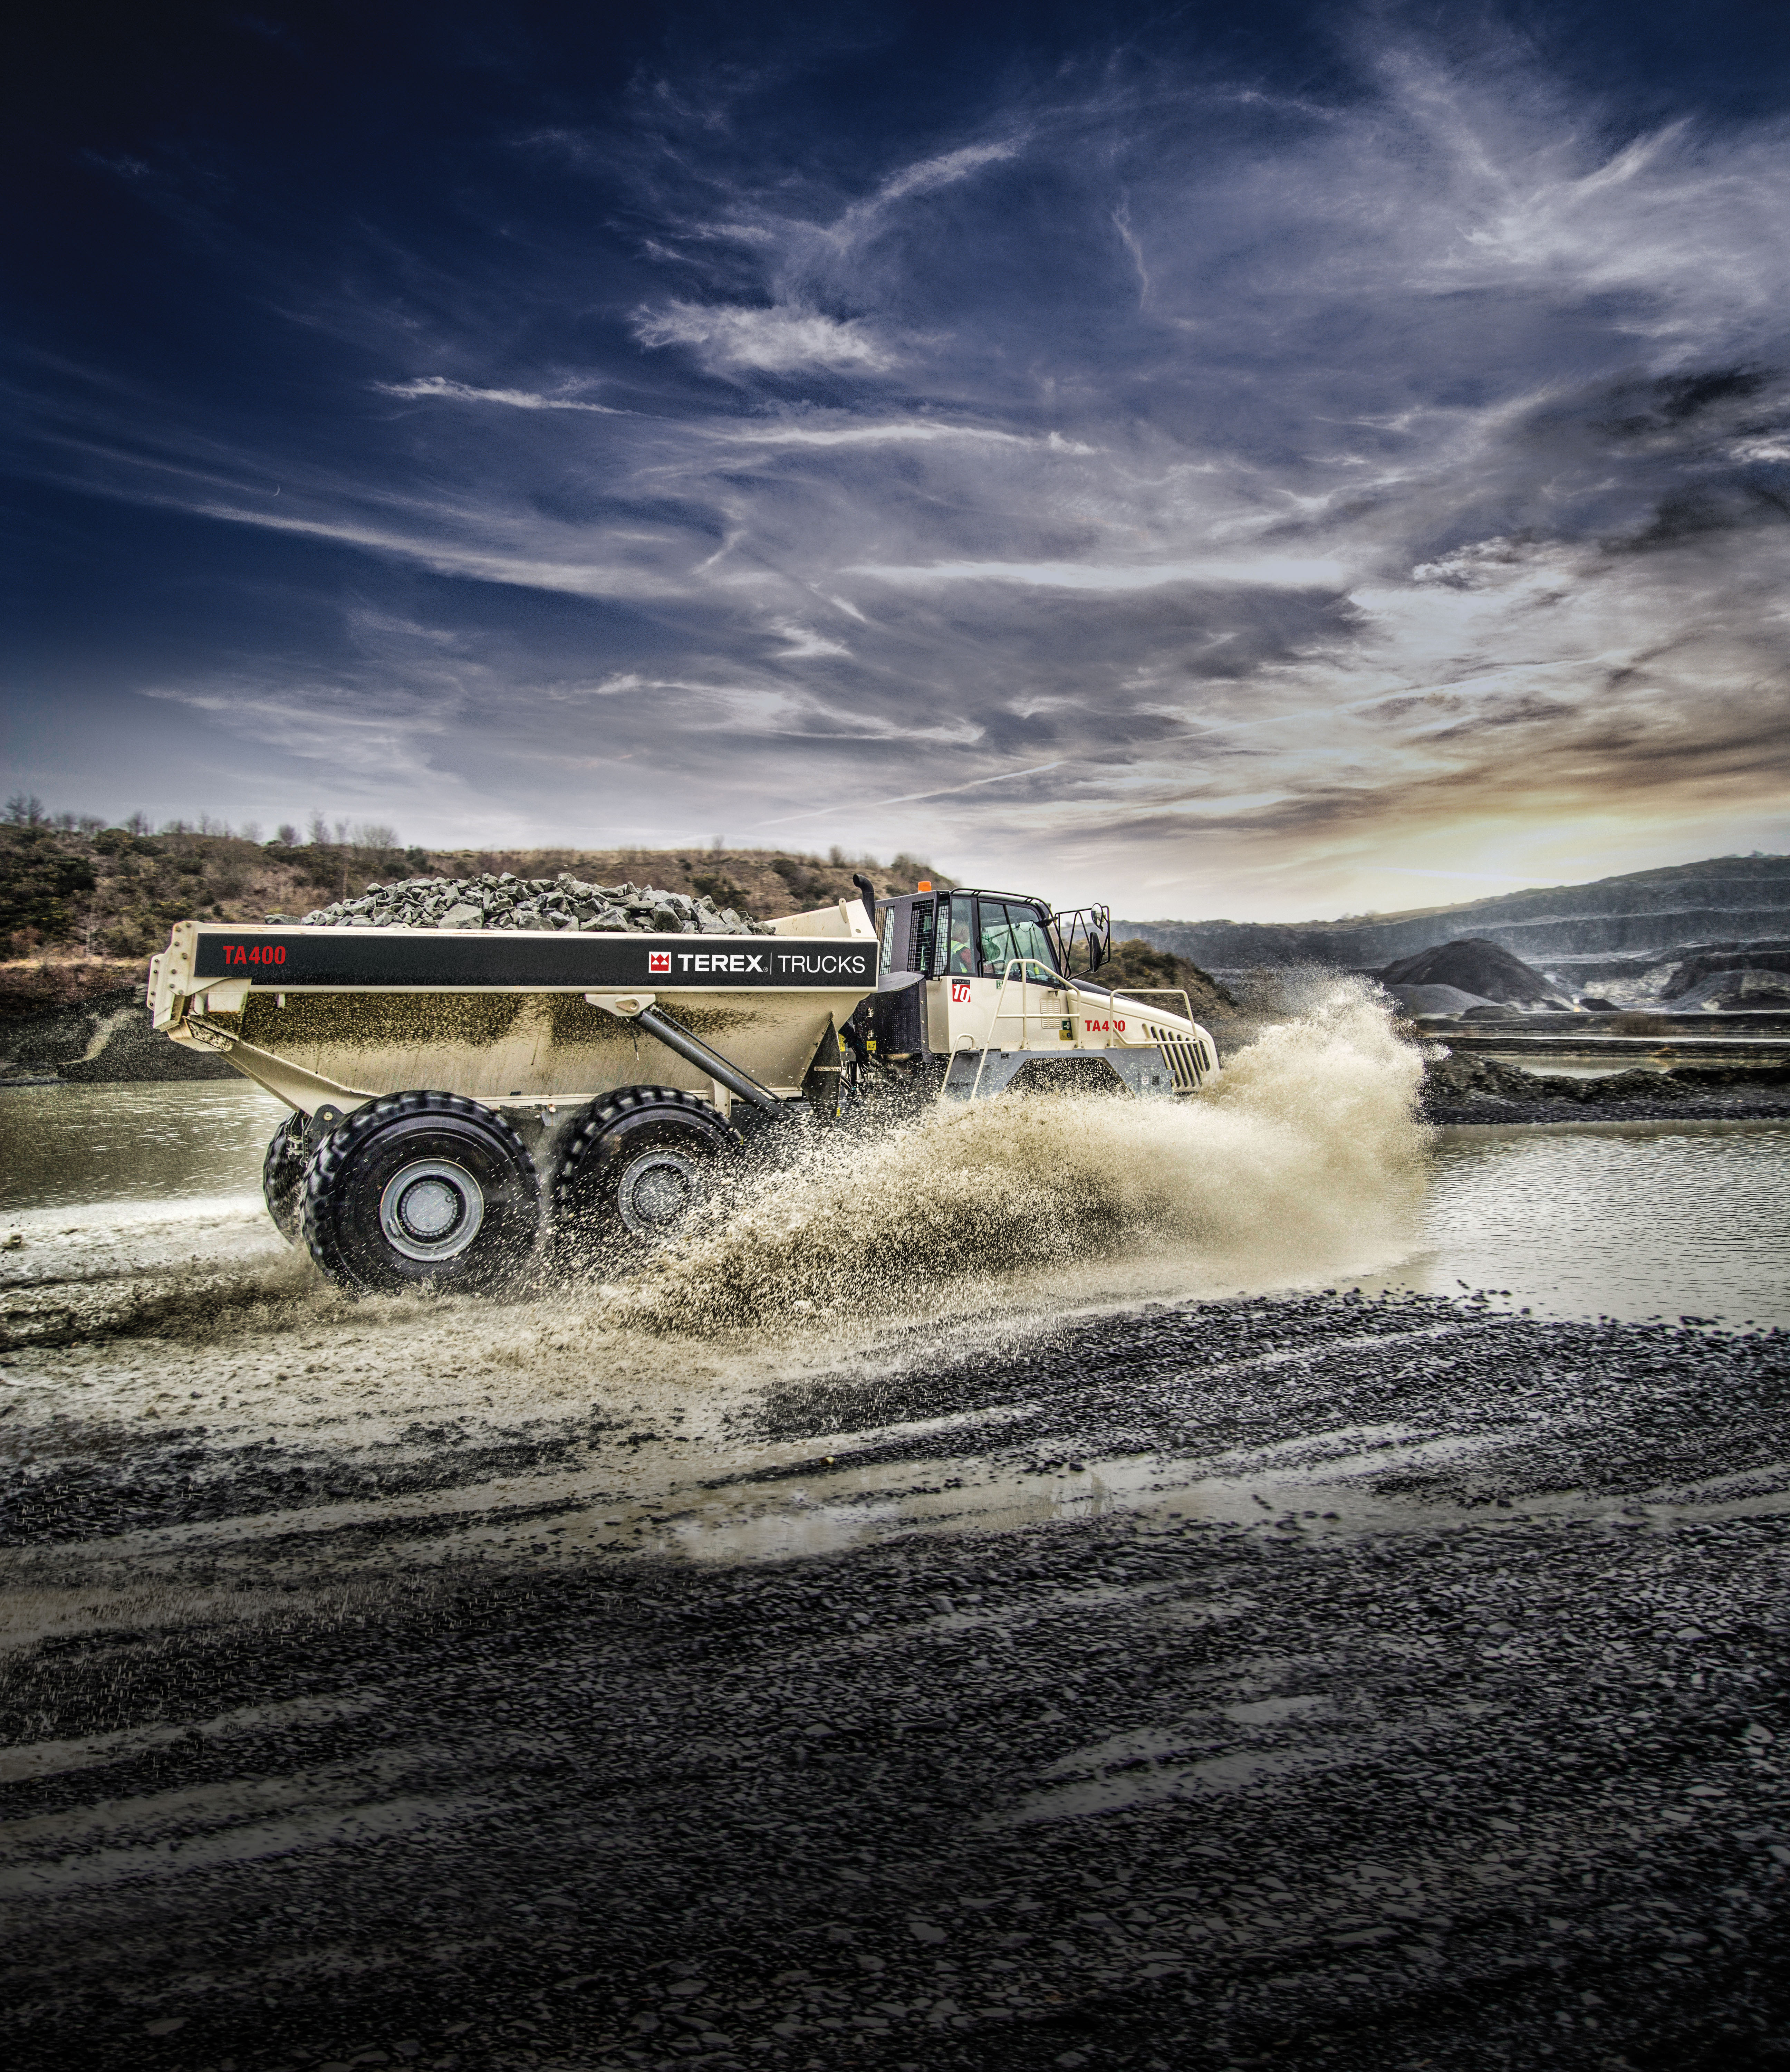 Terex Trucks' TA400 is the first of its new generation of articulated dump trucks, and will be on display at CONEXPO/CON-AGG